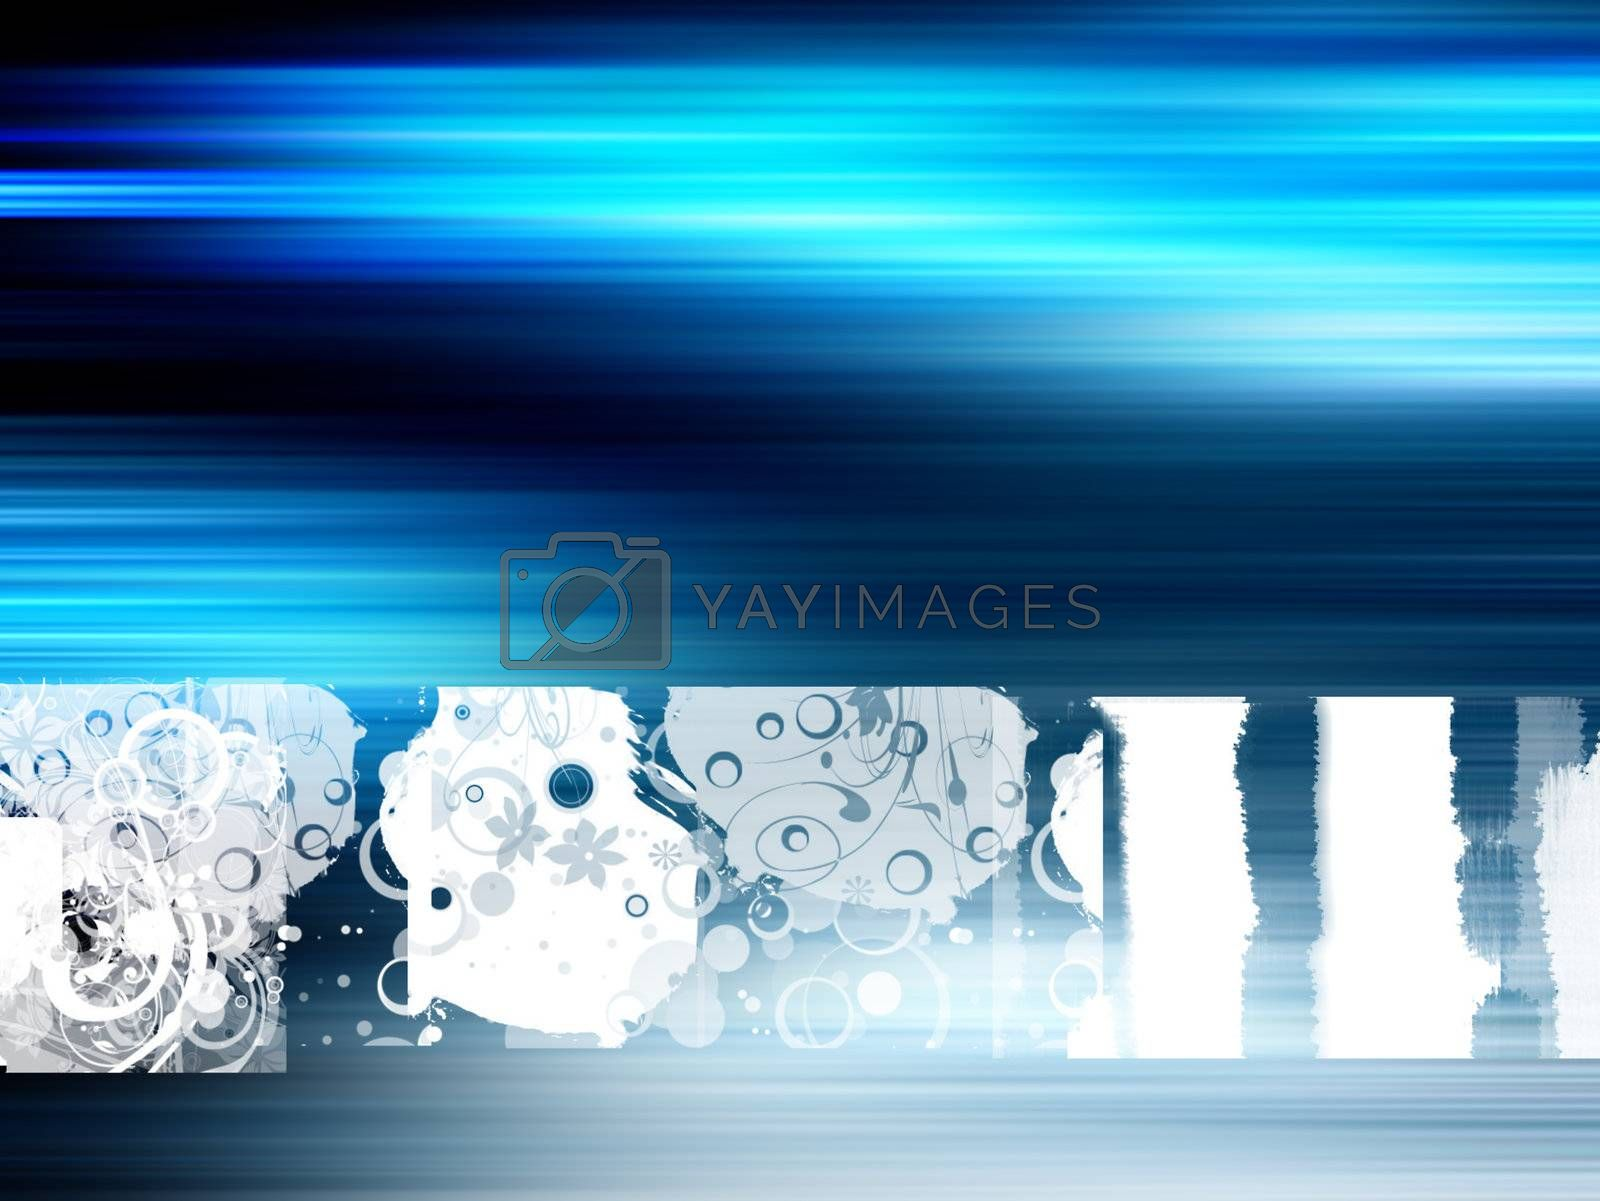 blue design. colors blue, white and black, abstract illustration